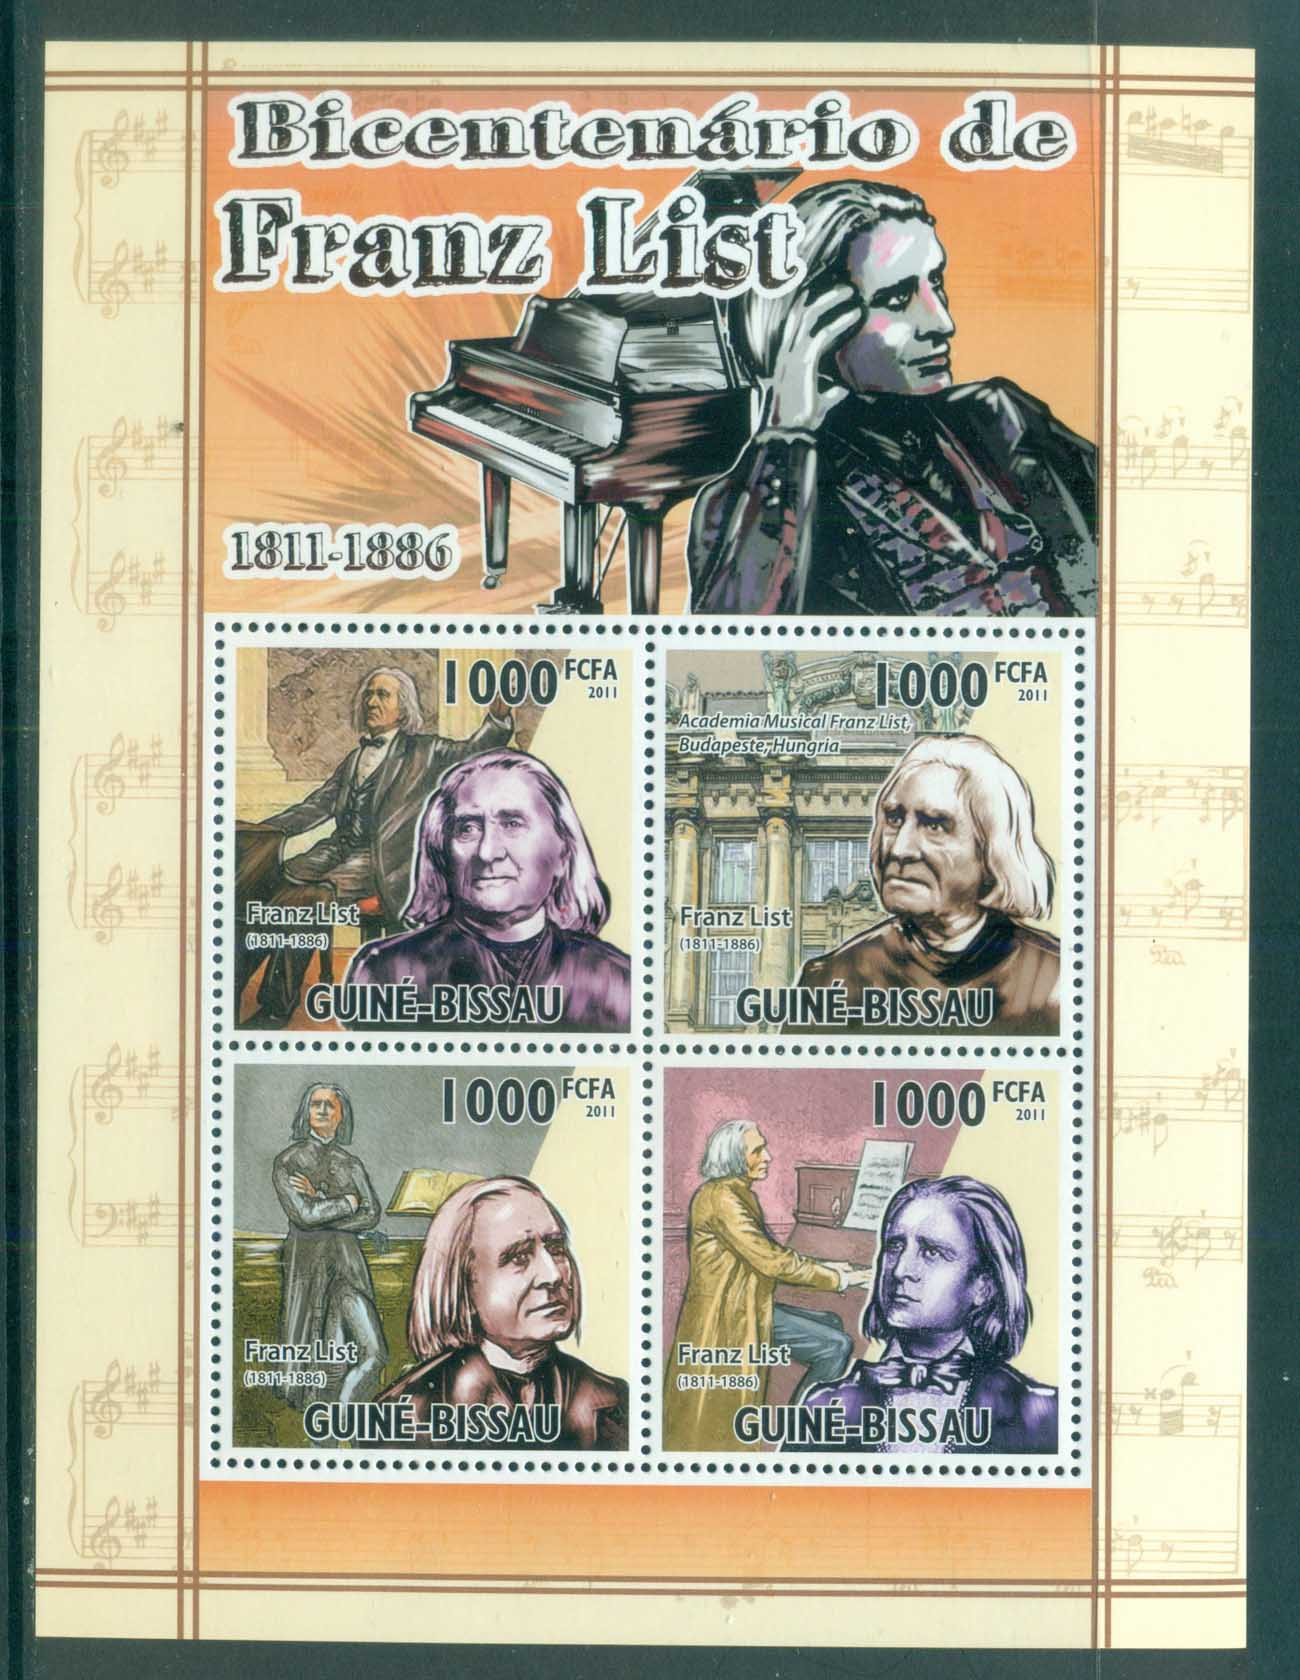 Guinea Bissau 2011 Famous People, Music, Classical, Franz Liszt MS MUH GB057